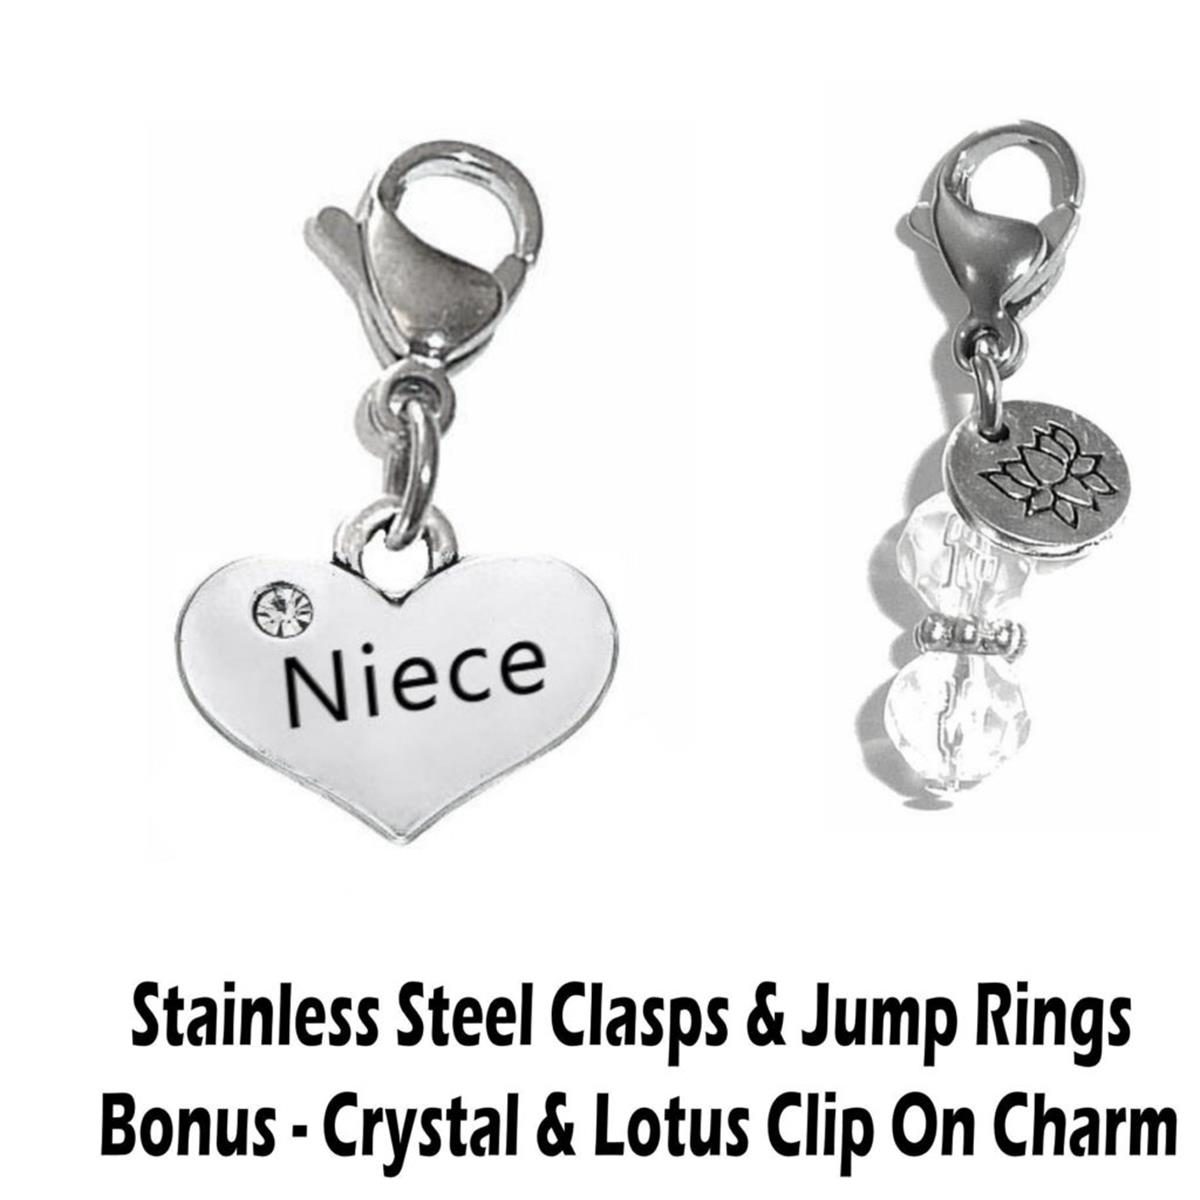 niece clip on charm - family charms